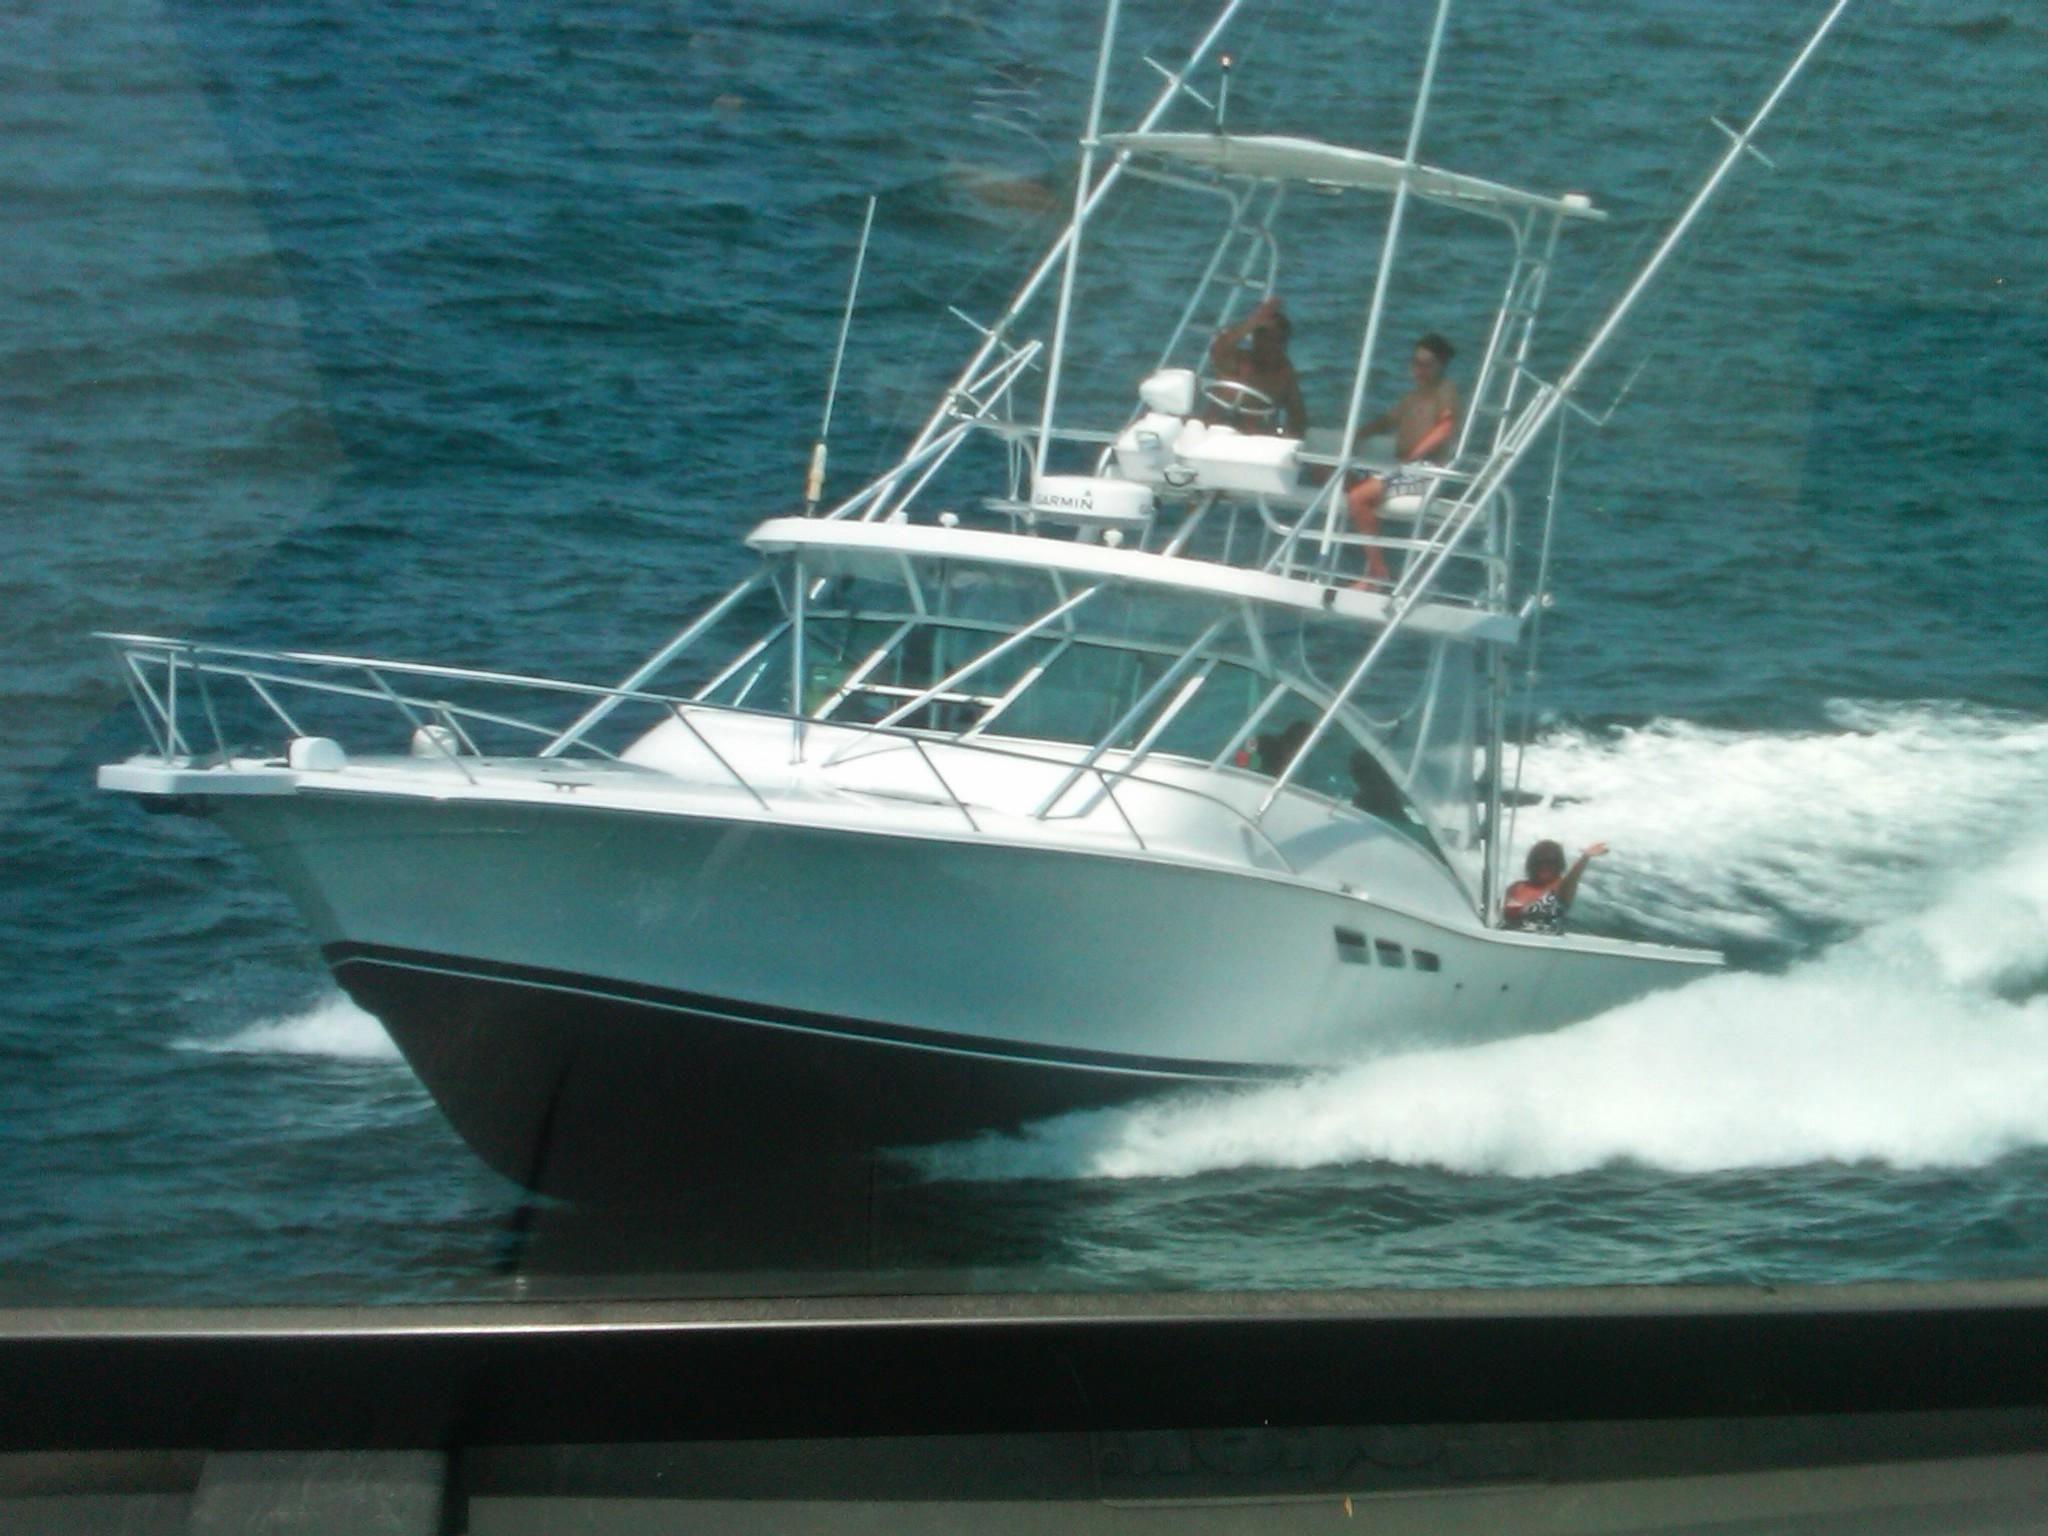 1998 luhrs express fisherman power boat for sale www for Express fishing boats for sale